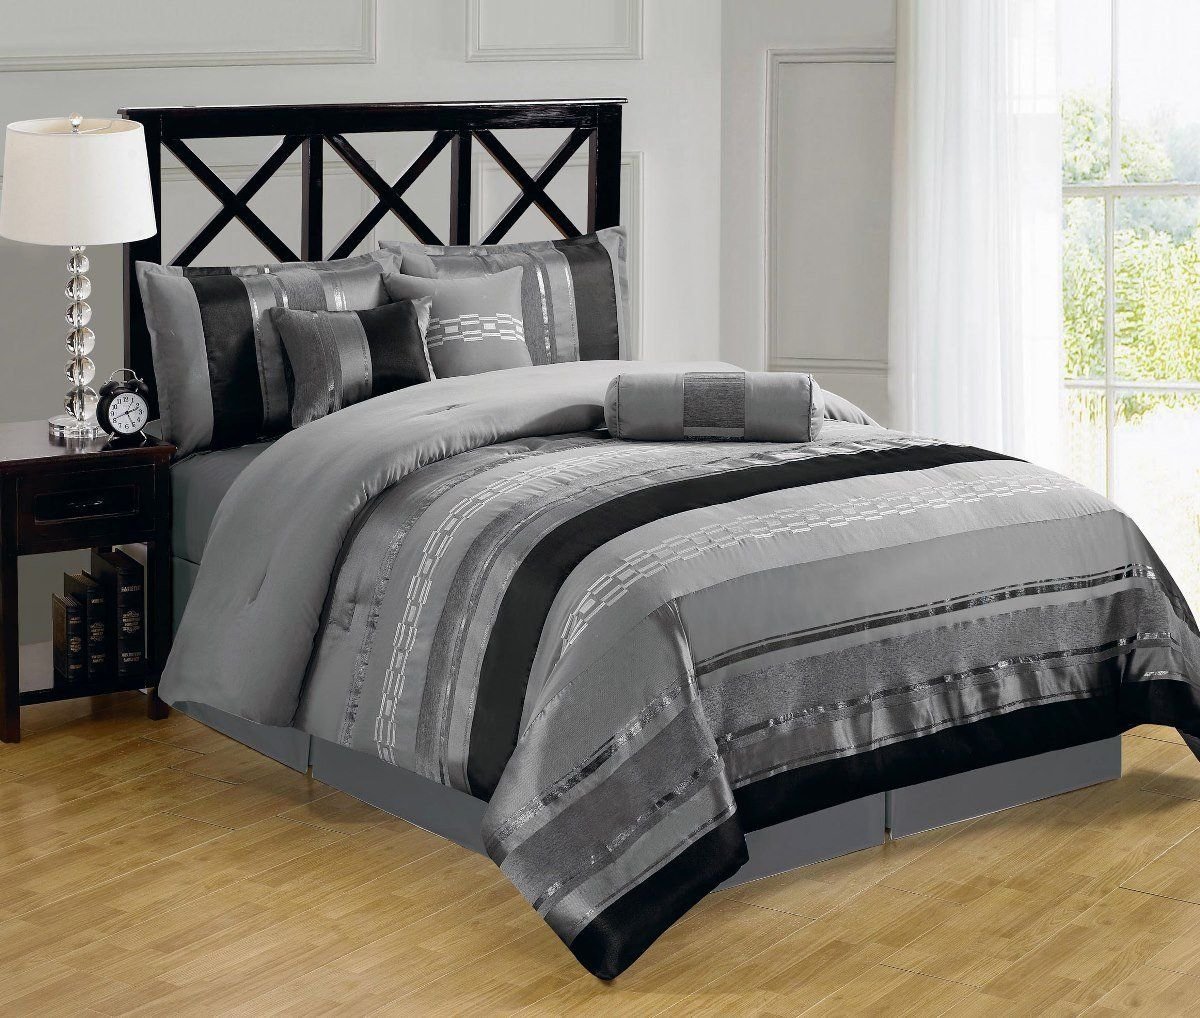 122 reference of do king sheets fit california king beds in 2020